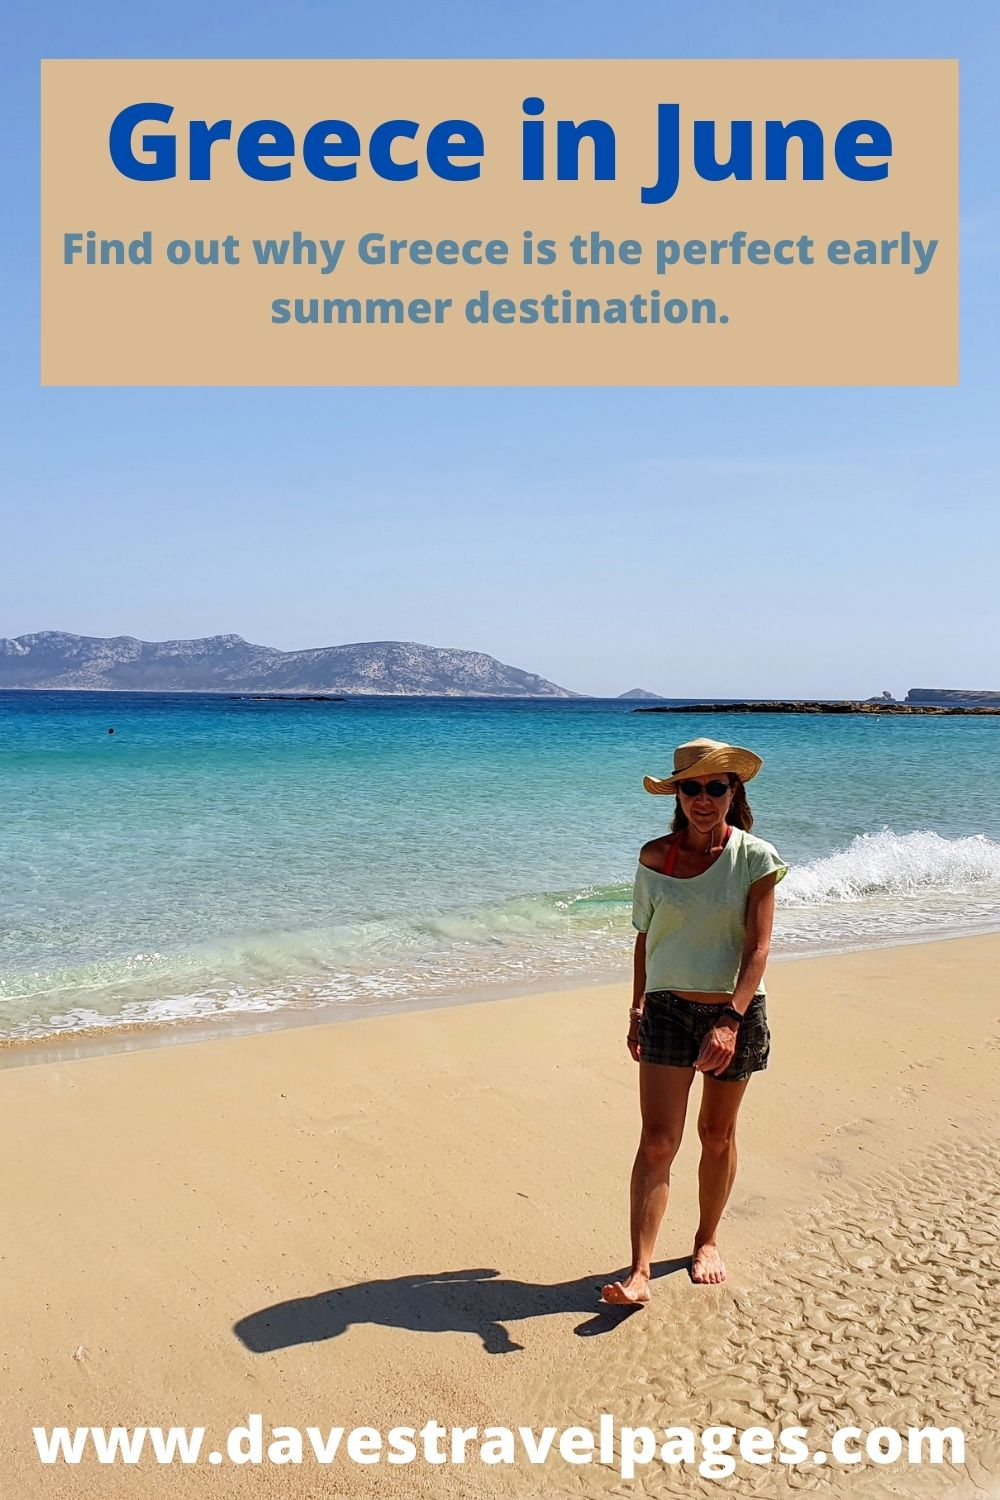 Greece in June: Find out why Greece is the perfect early summer destination.